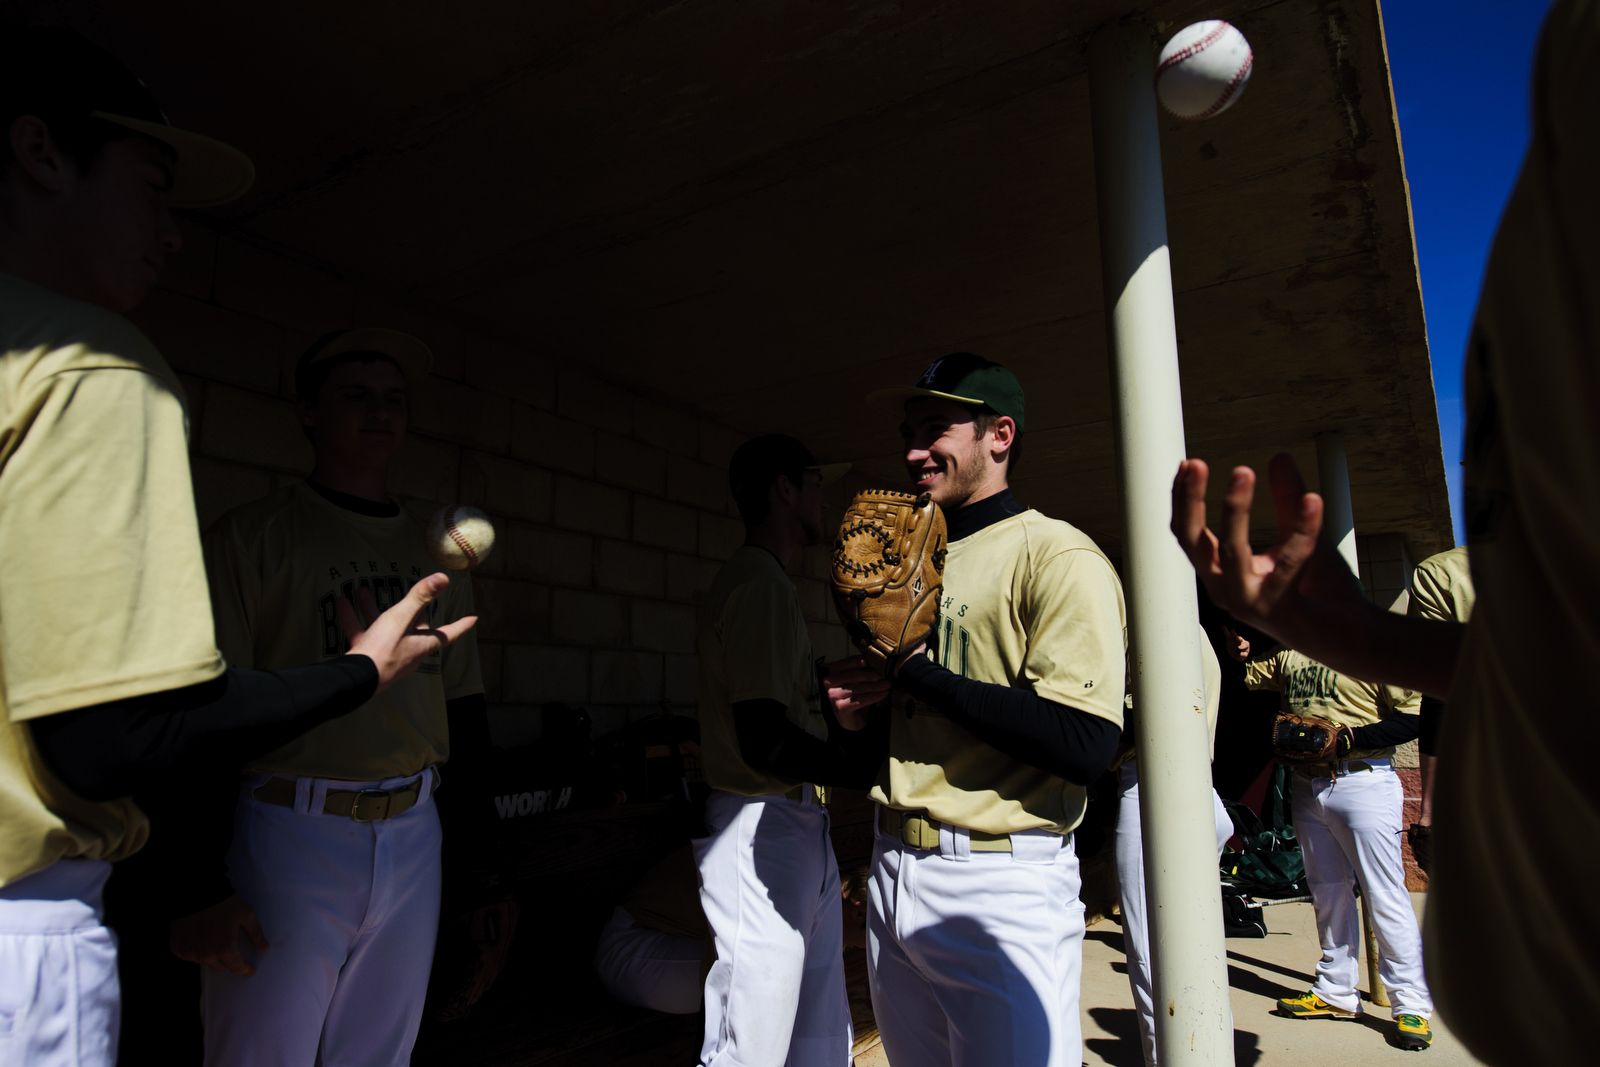 The team prepares to face Vinton County on Wednesday, April 16, 2014.